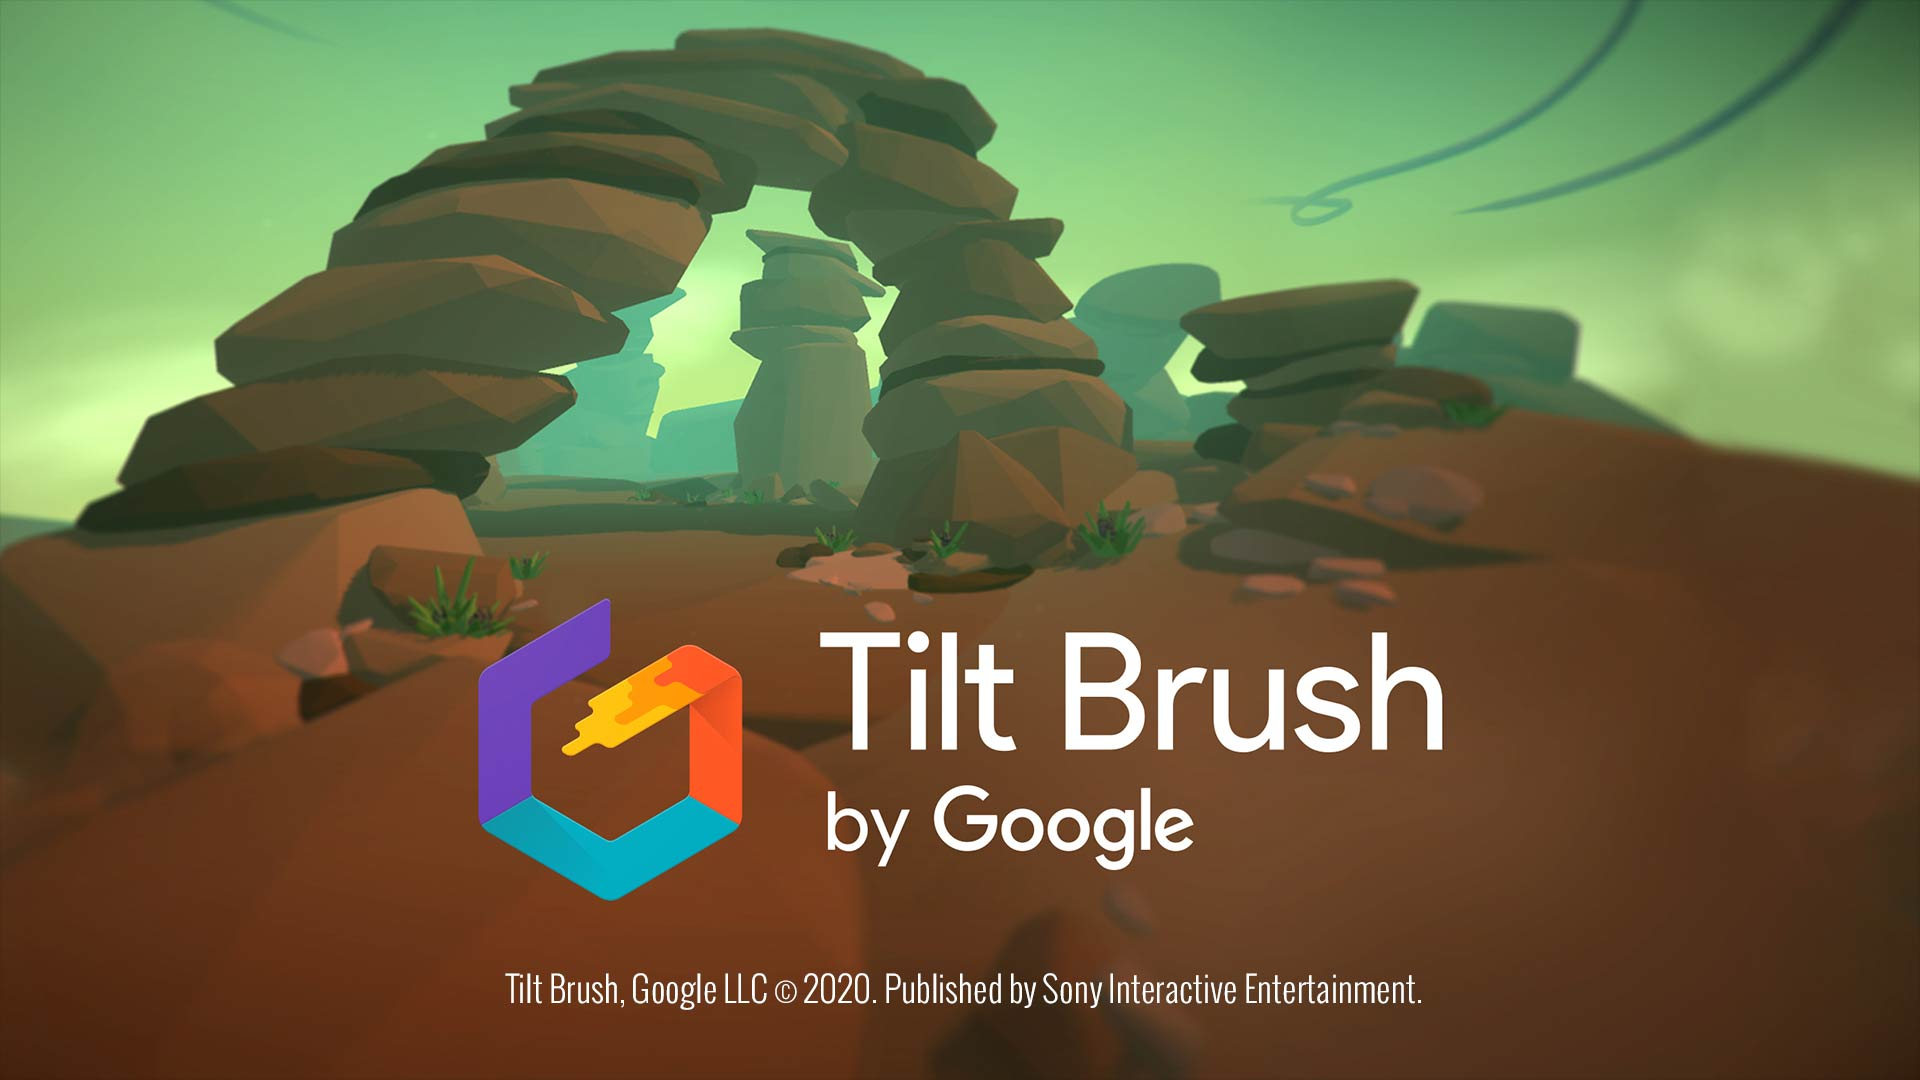 Google's 'Tilt Brush' is Coming to PSVR Quickly – Highway to VR 5